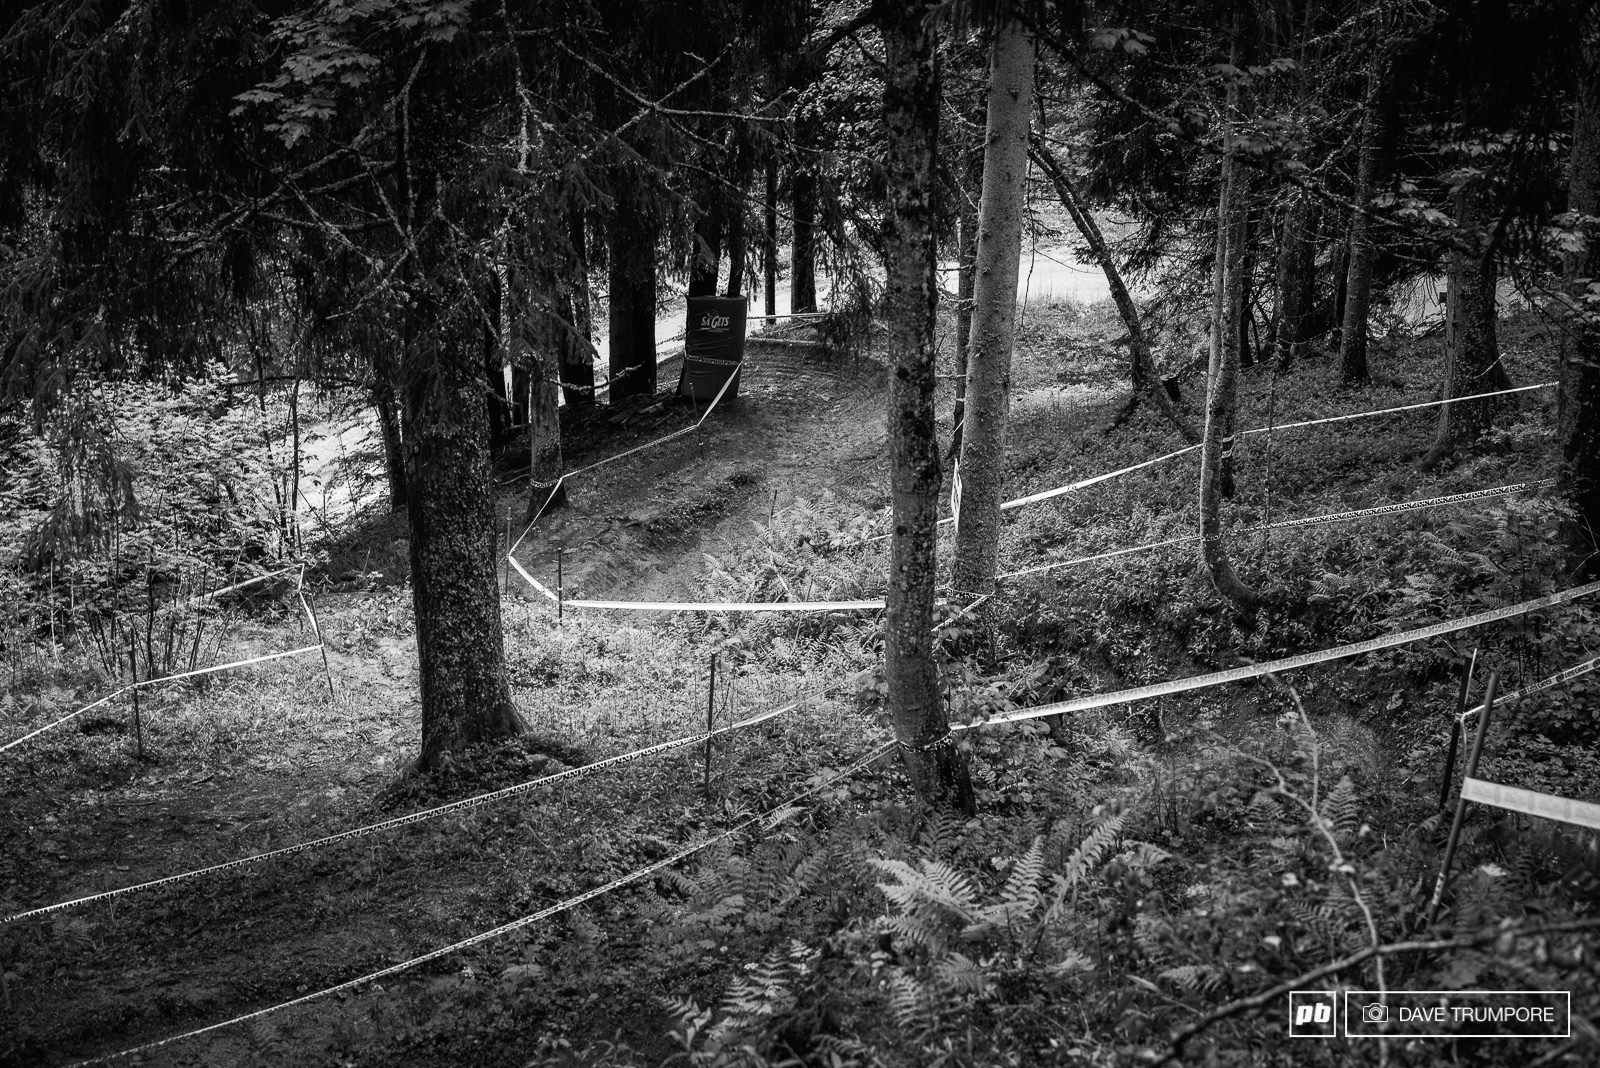 If you ve ever seen footage of the WC and World Championship races held here in the past you might recognize this gully as one of the more iconic and classic sections of the track.